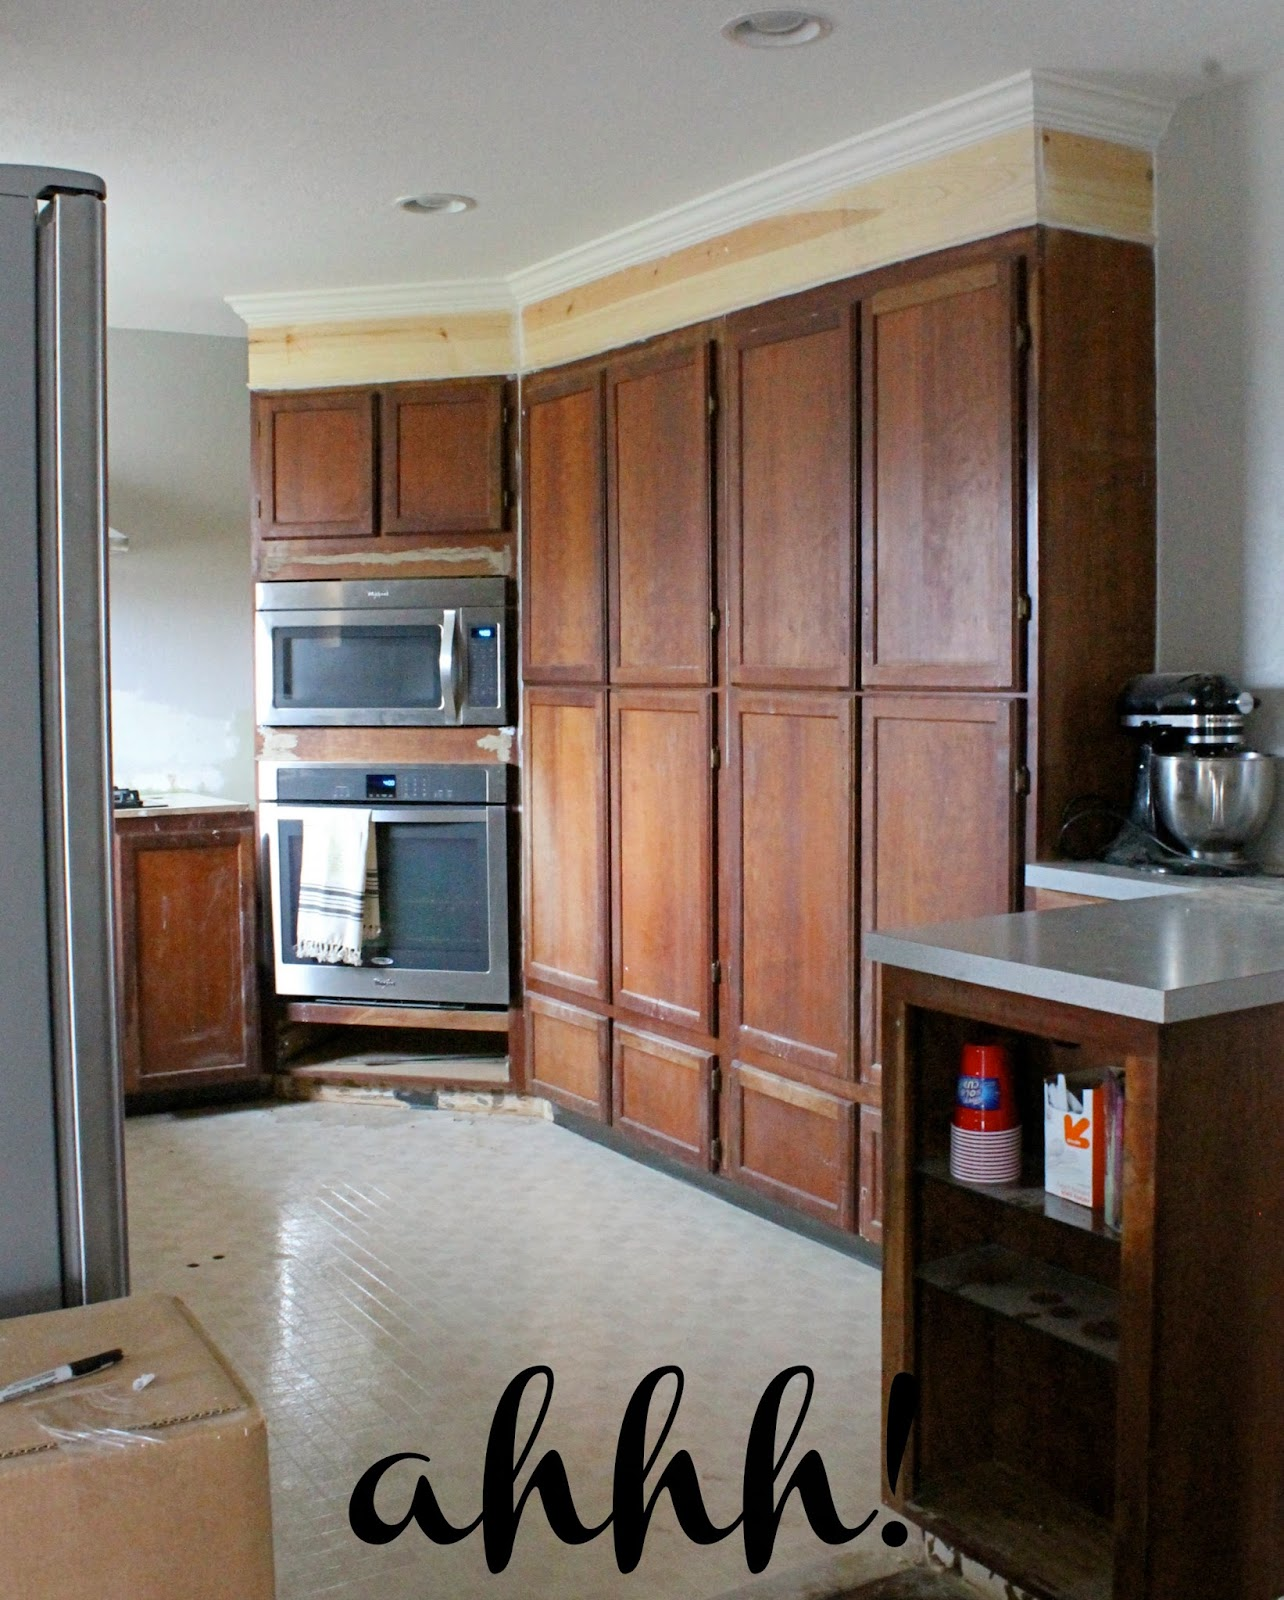 Material For Kitchen Cabinet: Wonderfully Made: Extending Kitchen Cabinets To The Ceiling